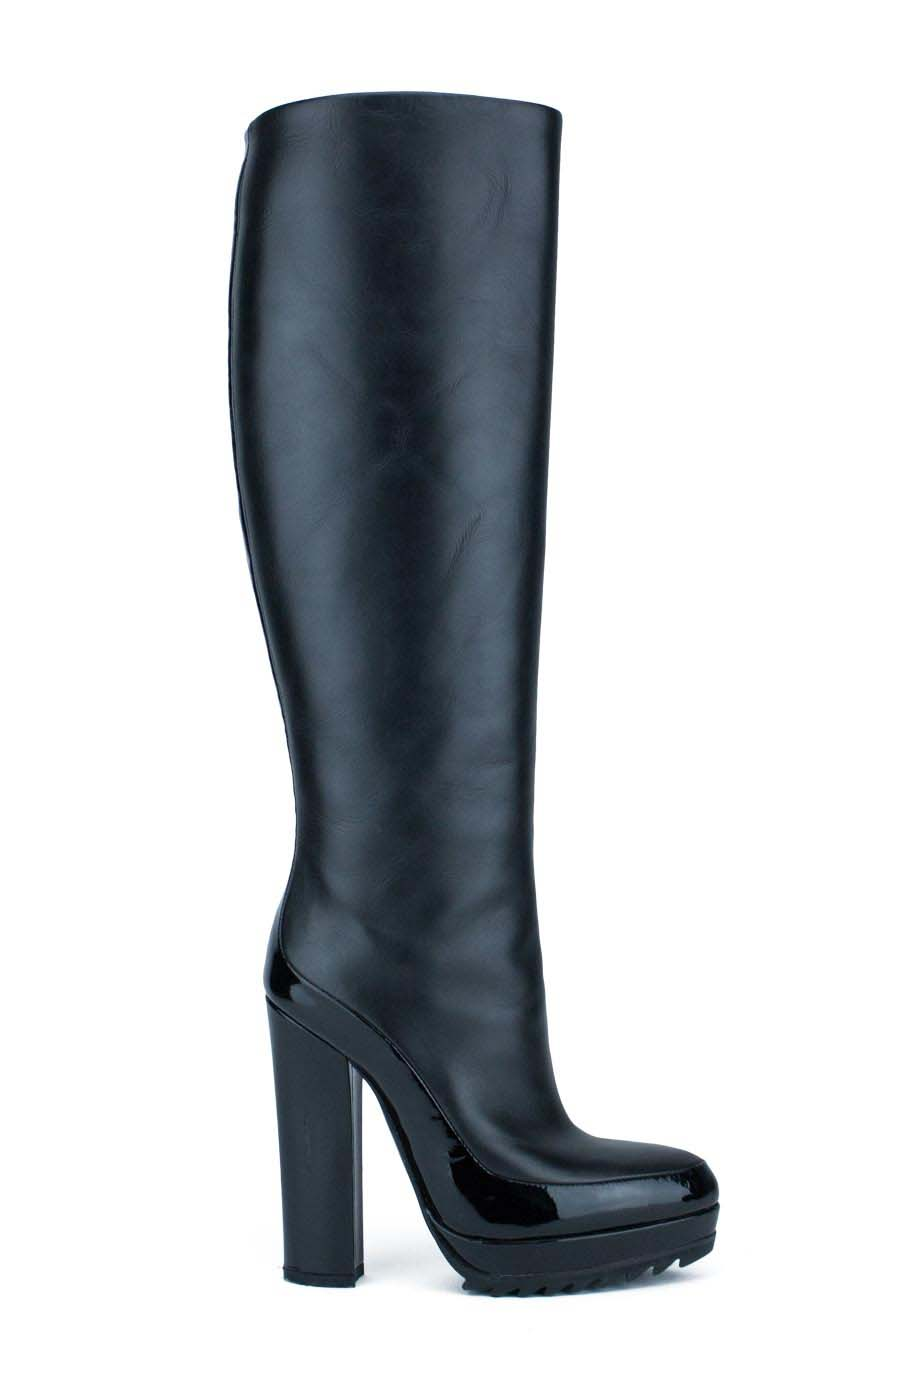 online sale clearance fashionable Bottega Veneta Leather Knee-High Boots buy cheap low shipping fee low price fee shipping cheap sale ebay YjCEN249Y6